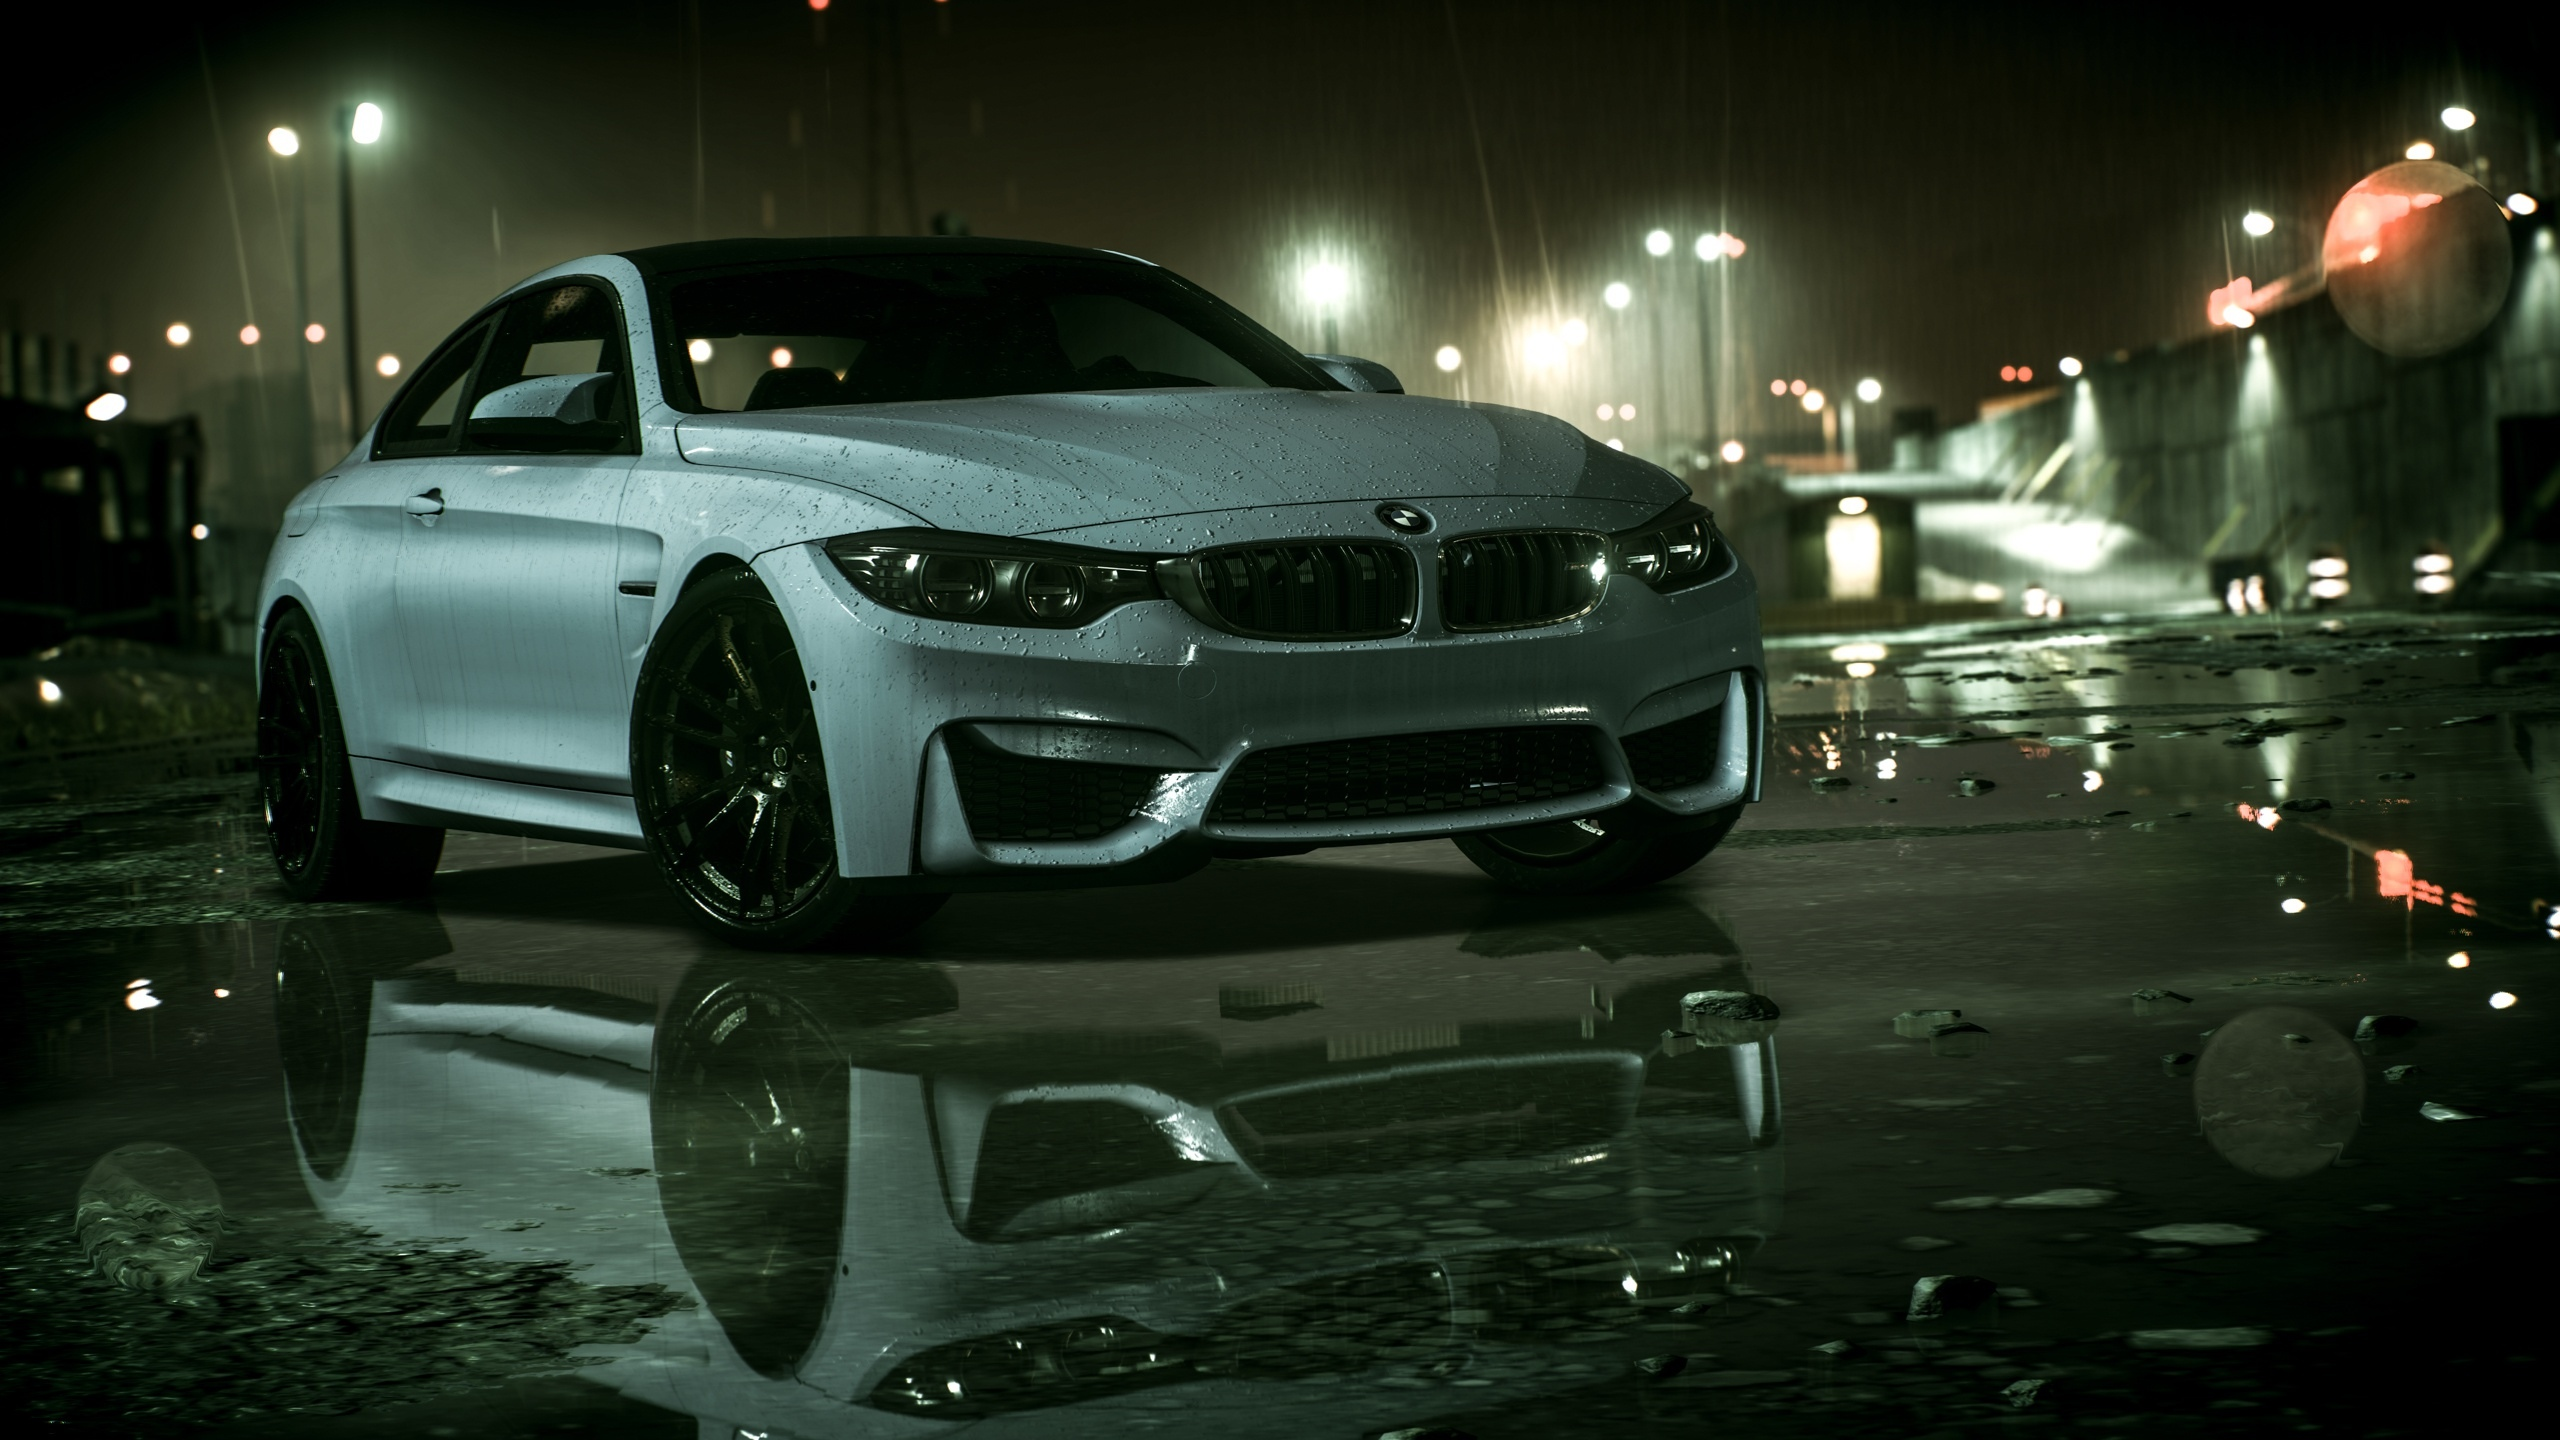 BMW車、雨、Need For Speed 2560x1440 壁紙 背景画像